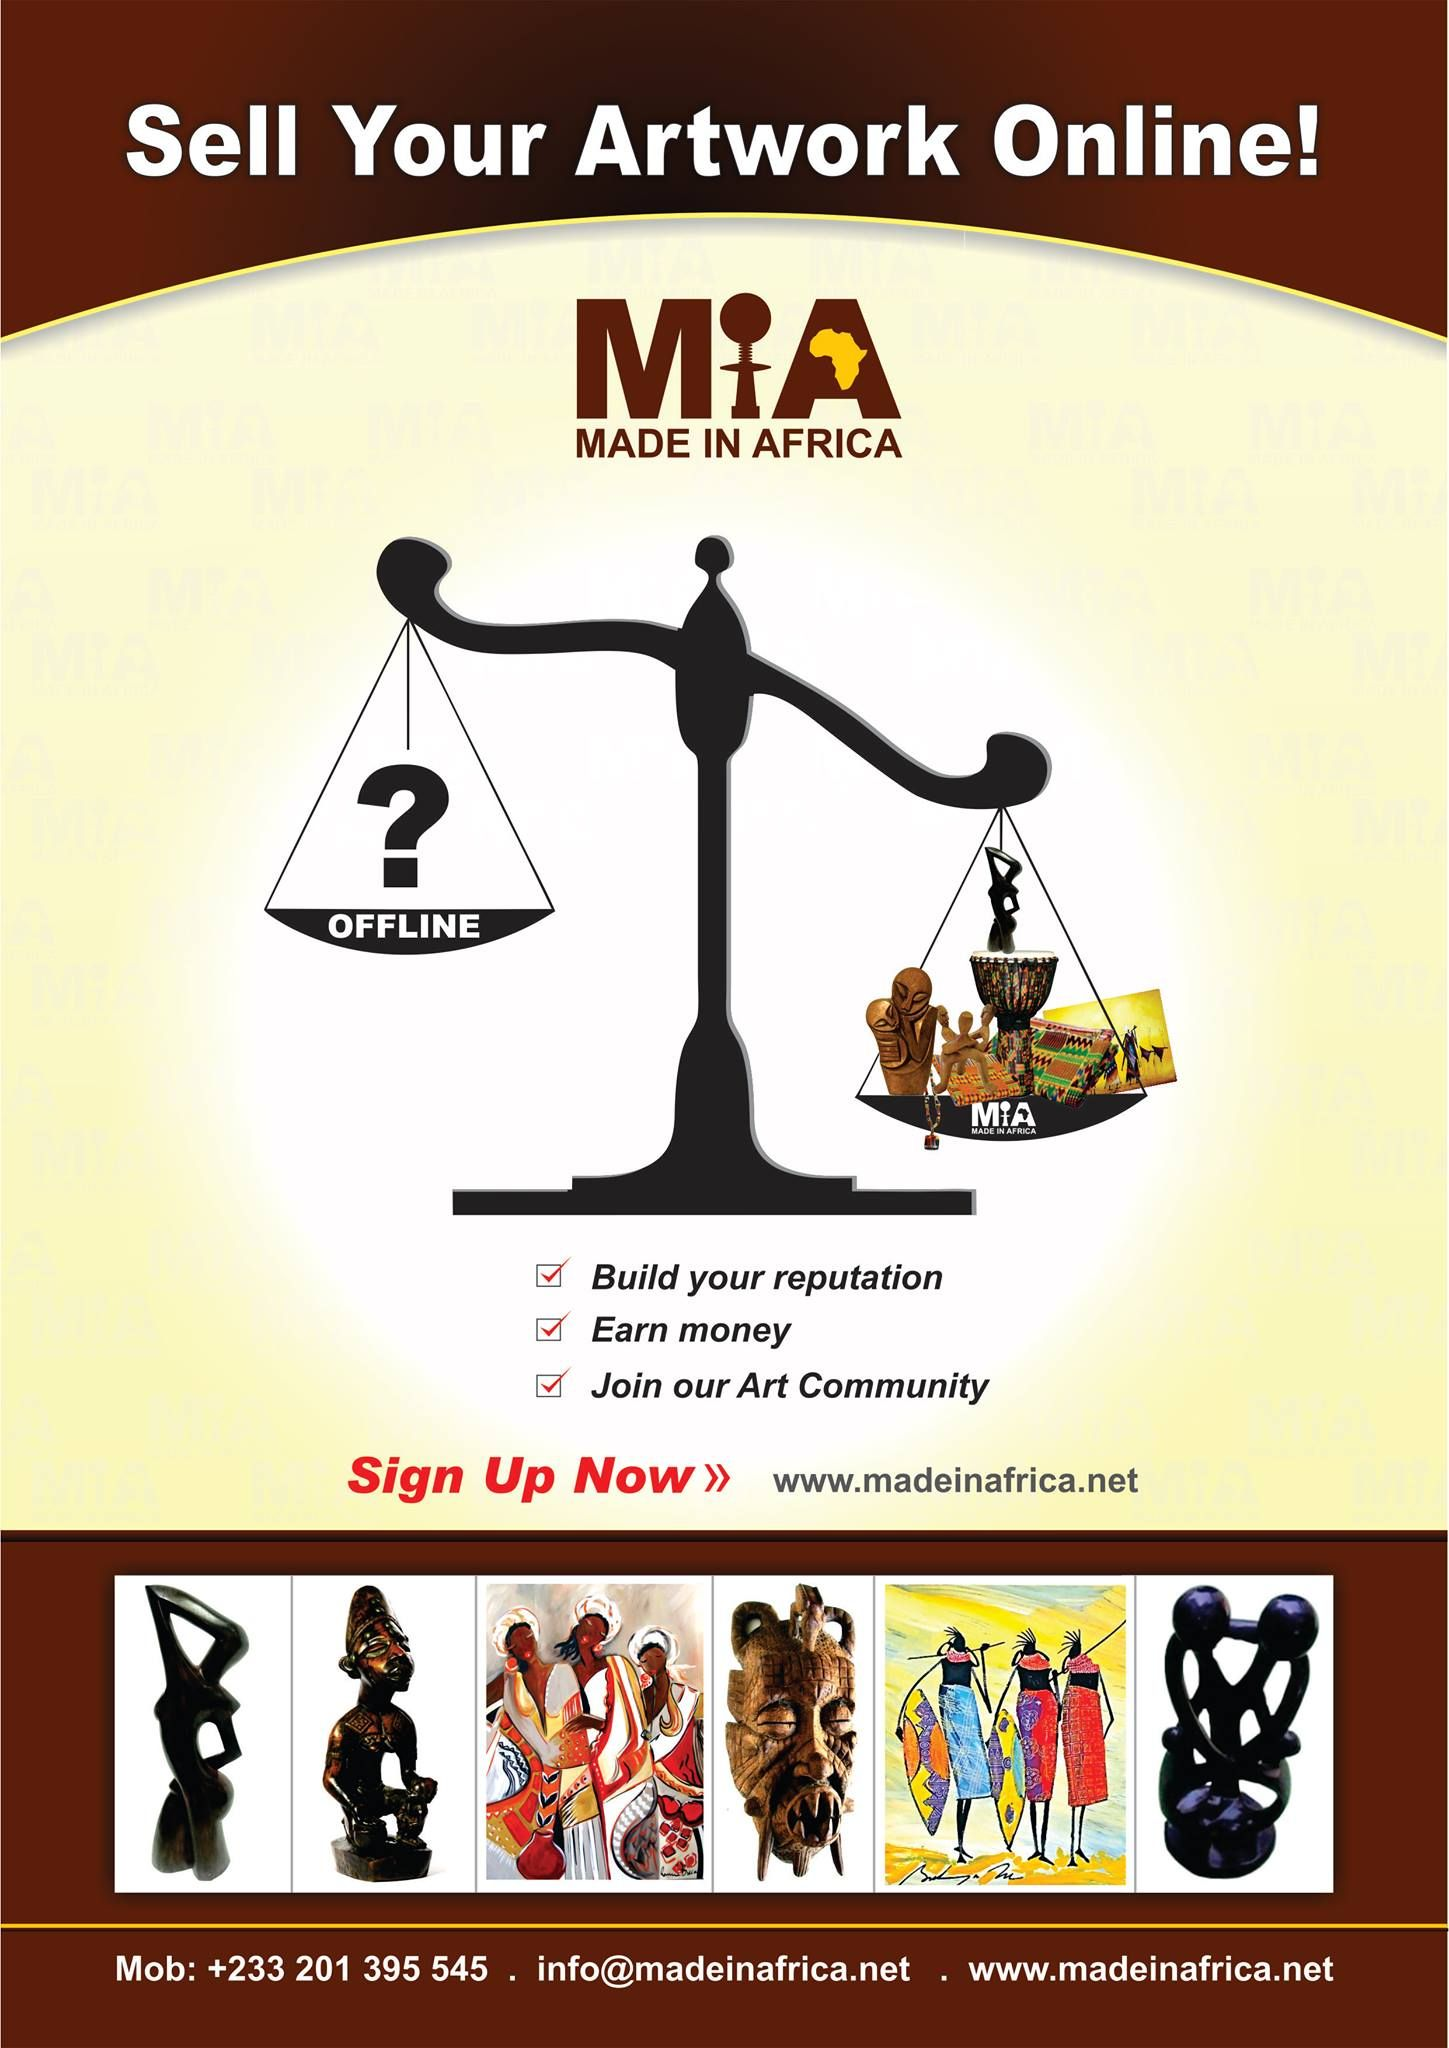 sell your artworks on www.madeinafrica.net